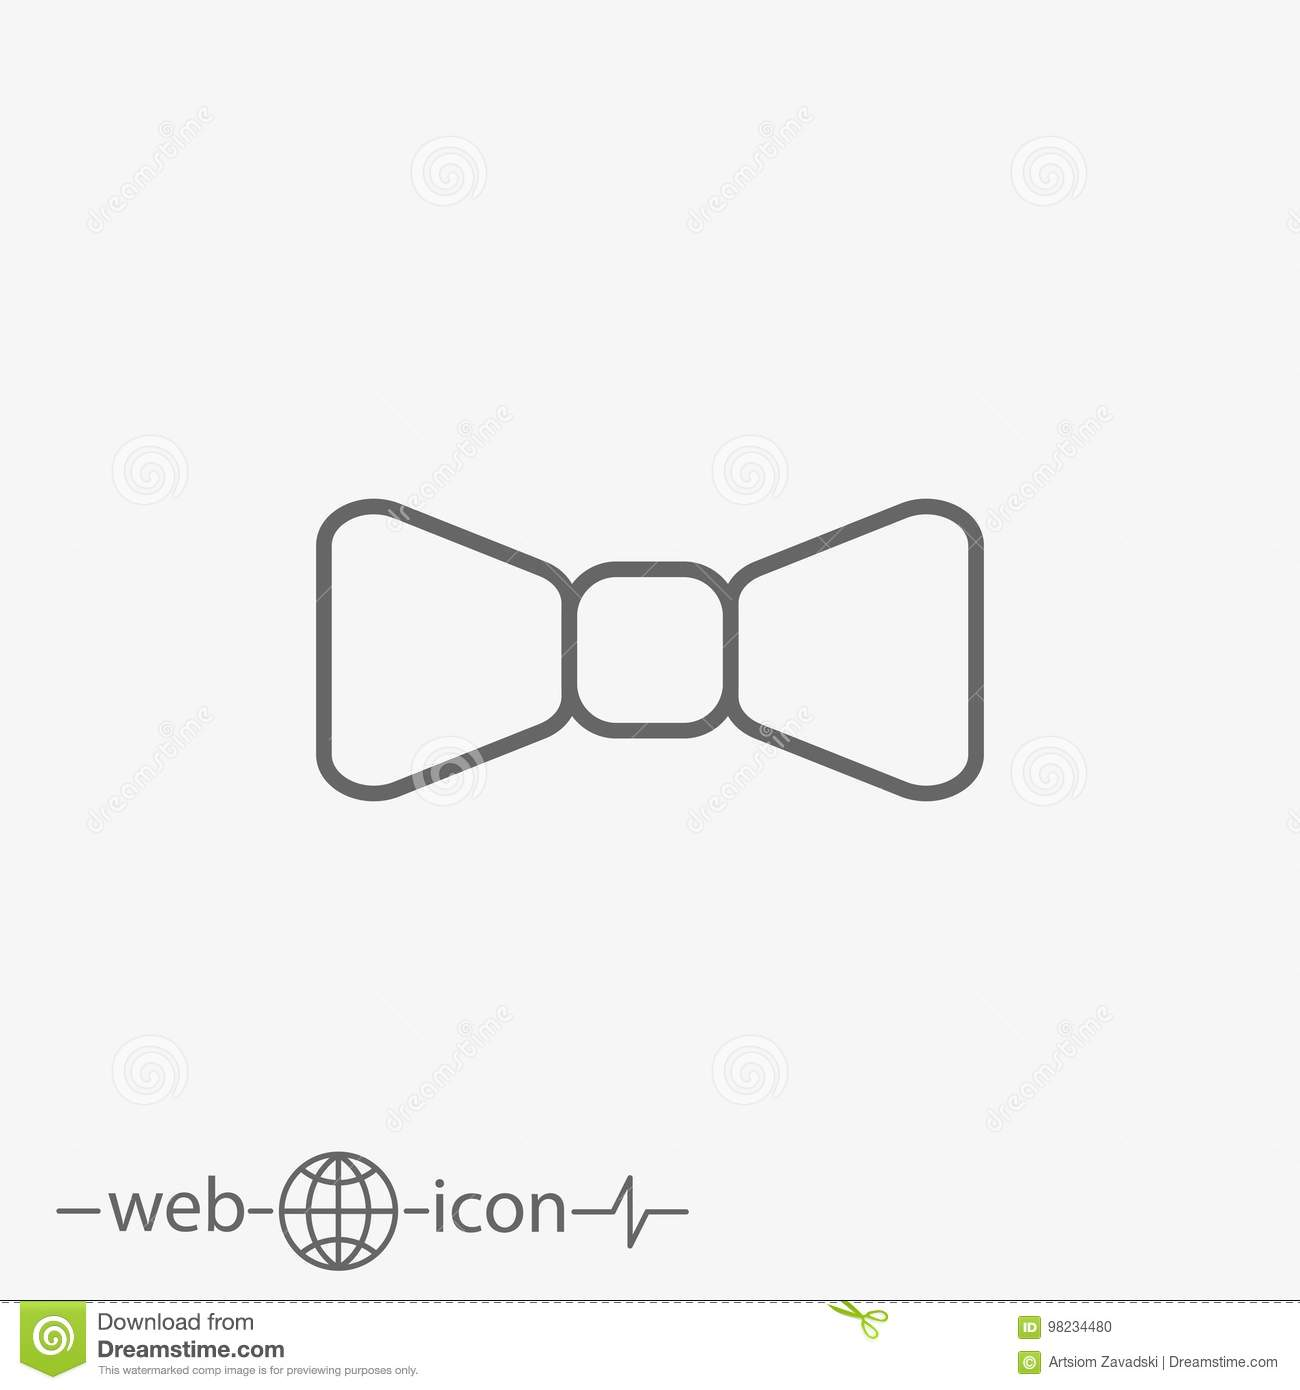 67d13a76ed93 Outline Bow Tie Vector Icon Stock Vector - Illustration of outline ...